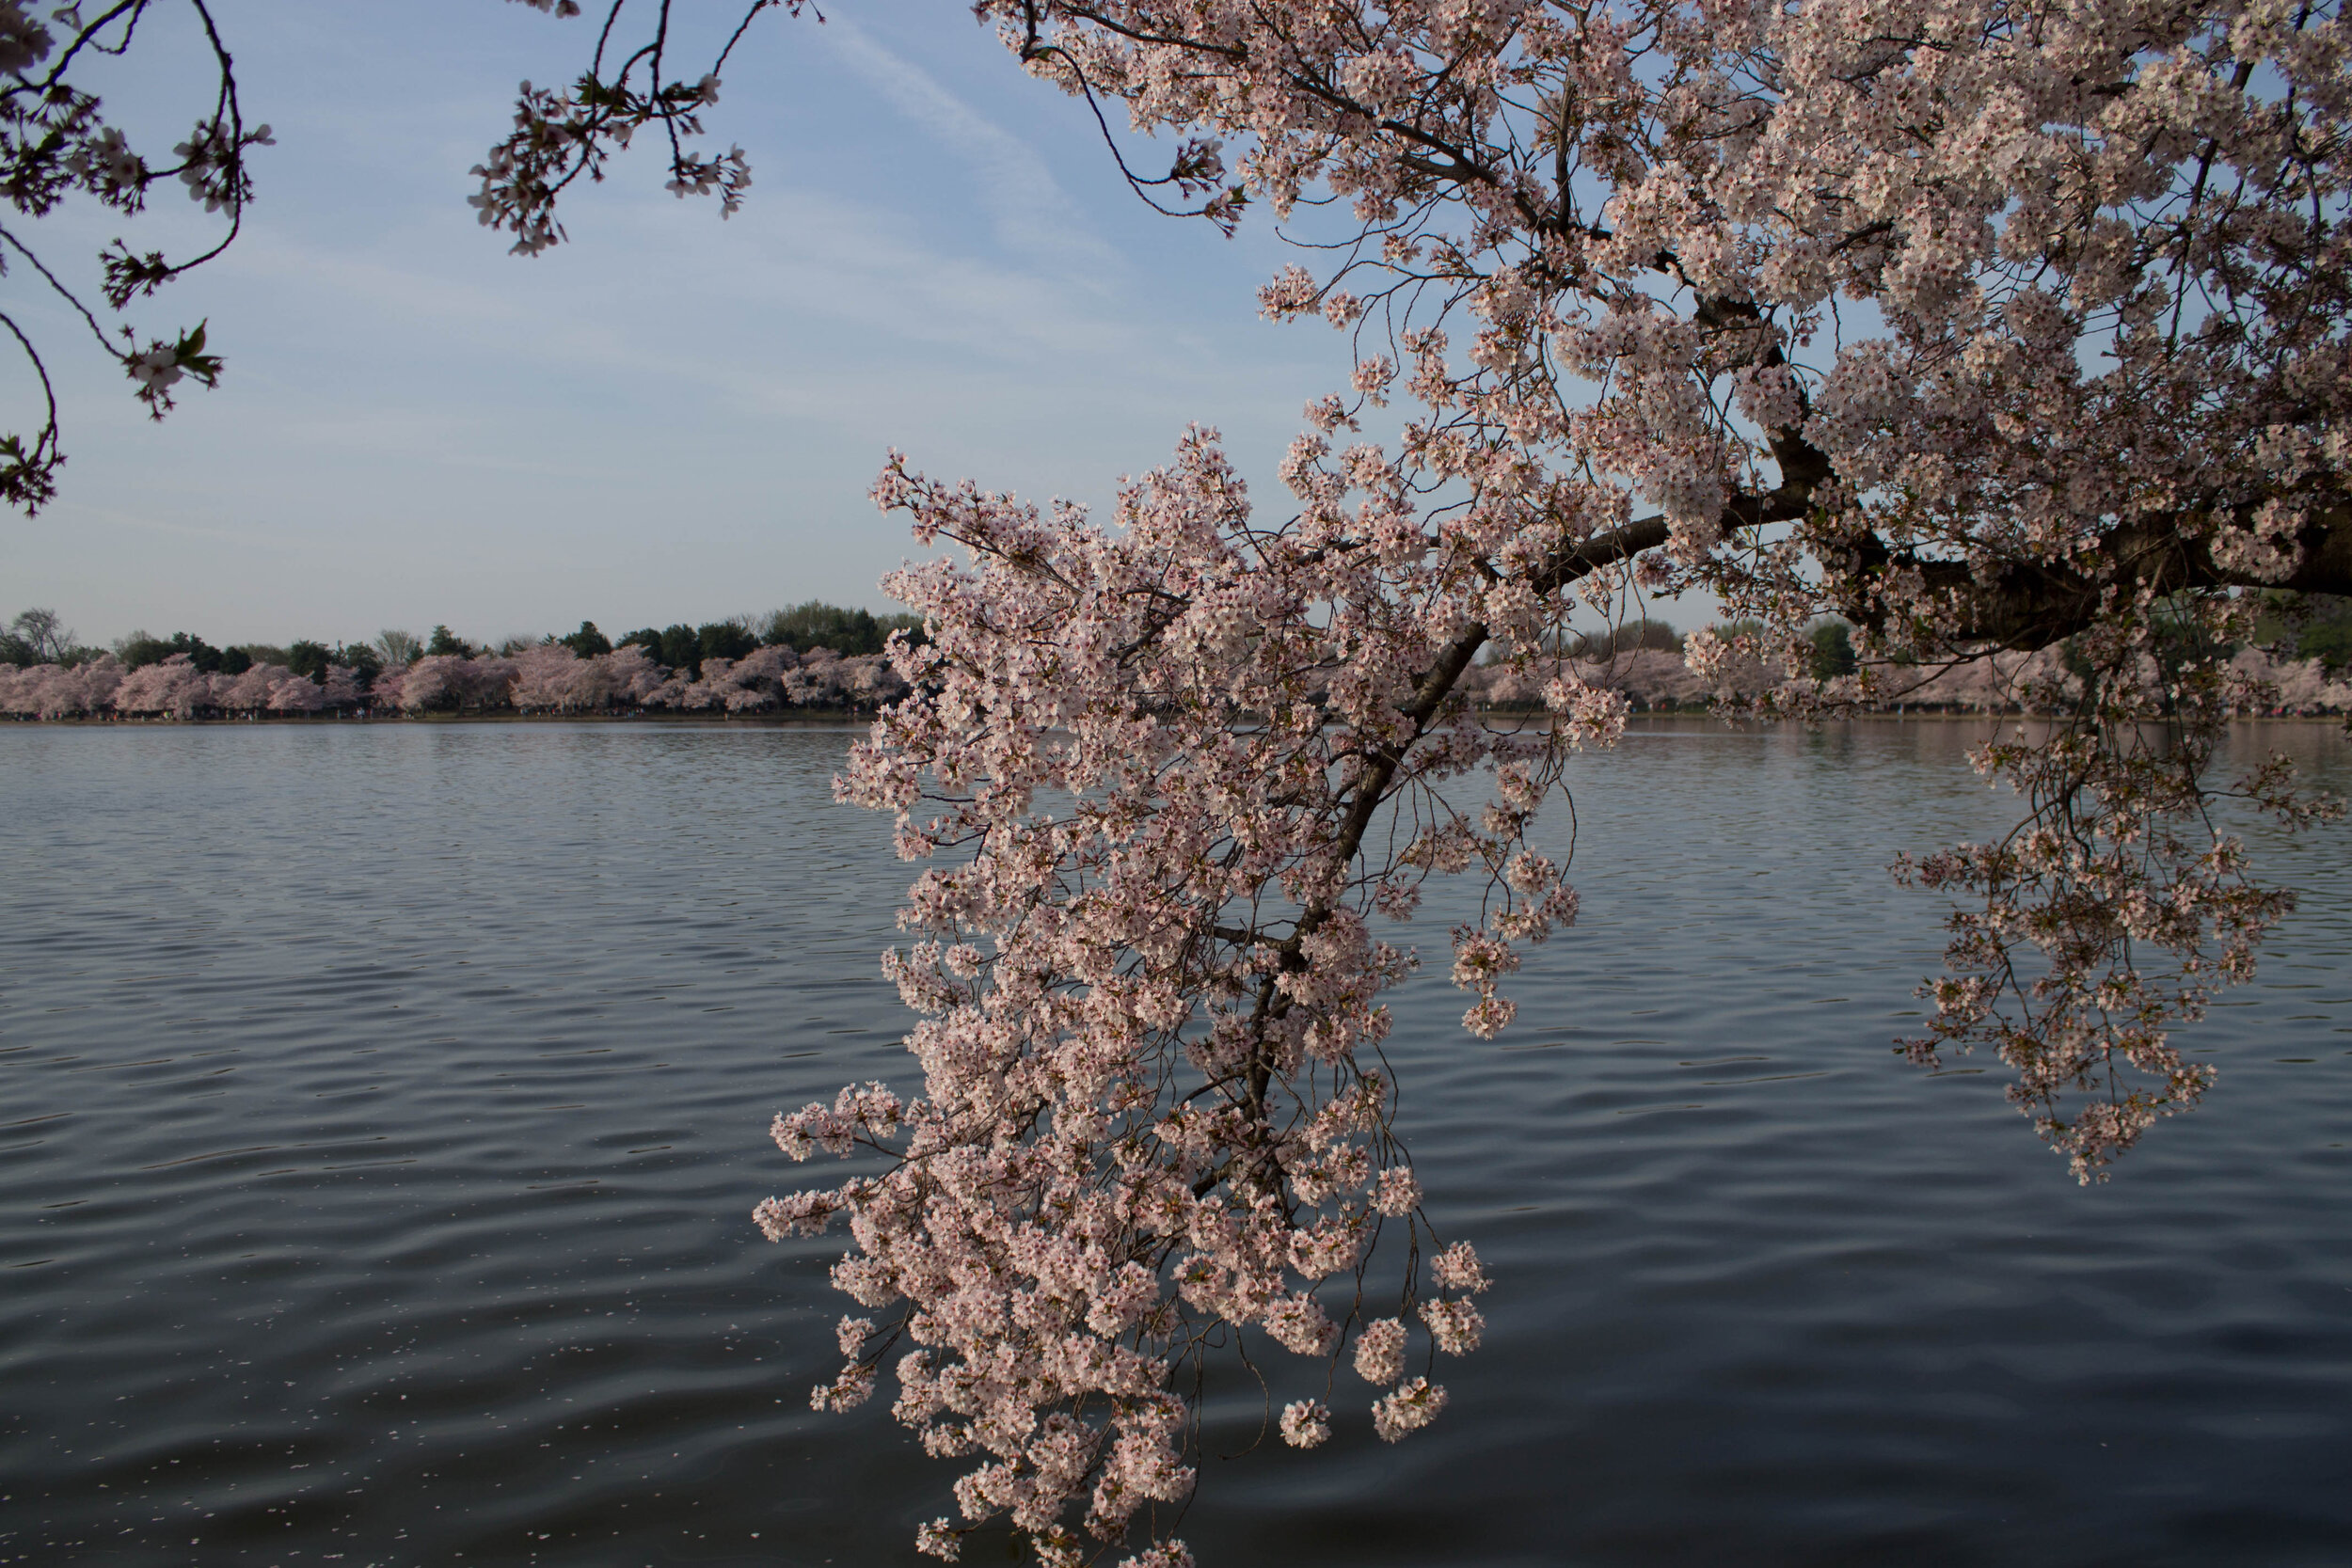 2014-04-13_Cherry_Blossons_and_Evening_Downtown-20140413-IMG_8620.jpg